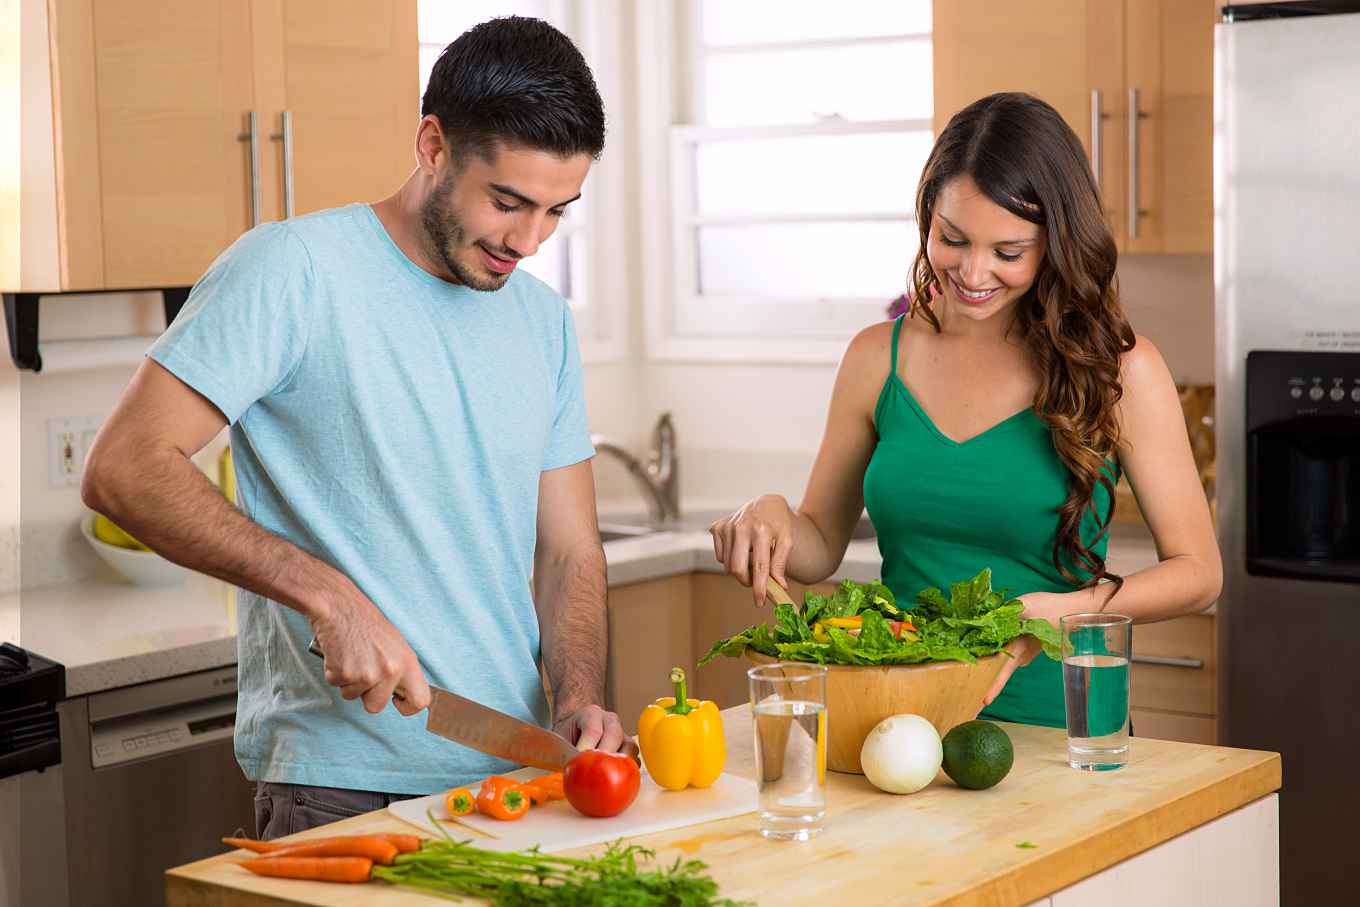 Set Yourself Up for Healthy Cooking